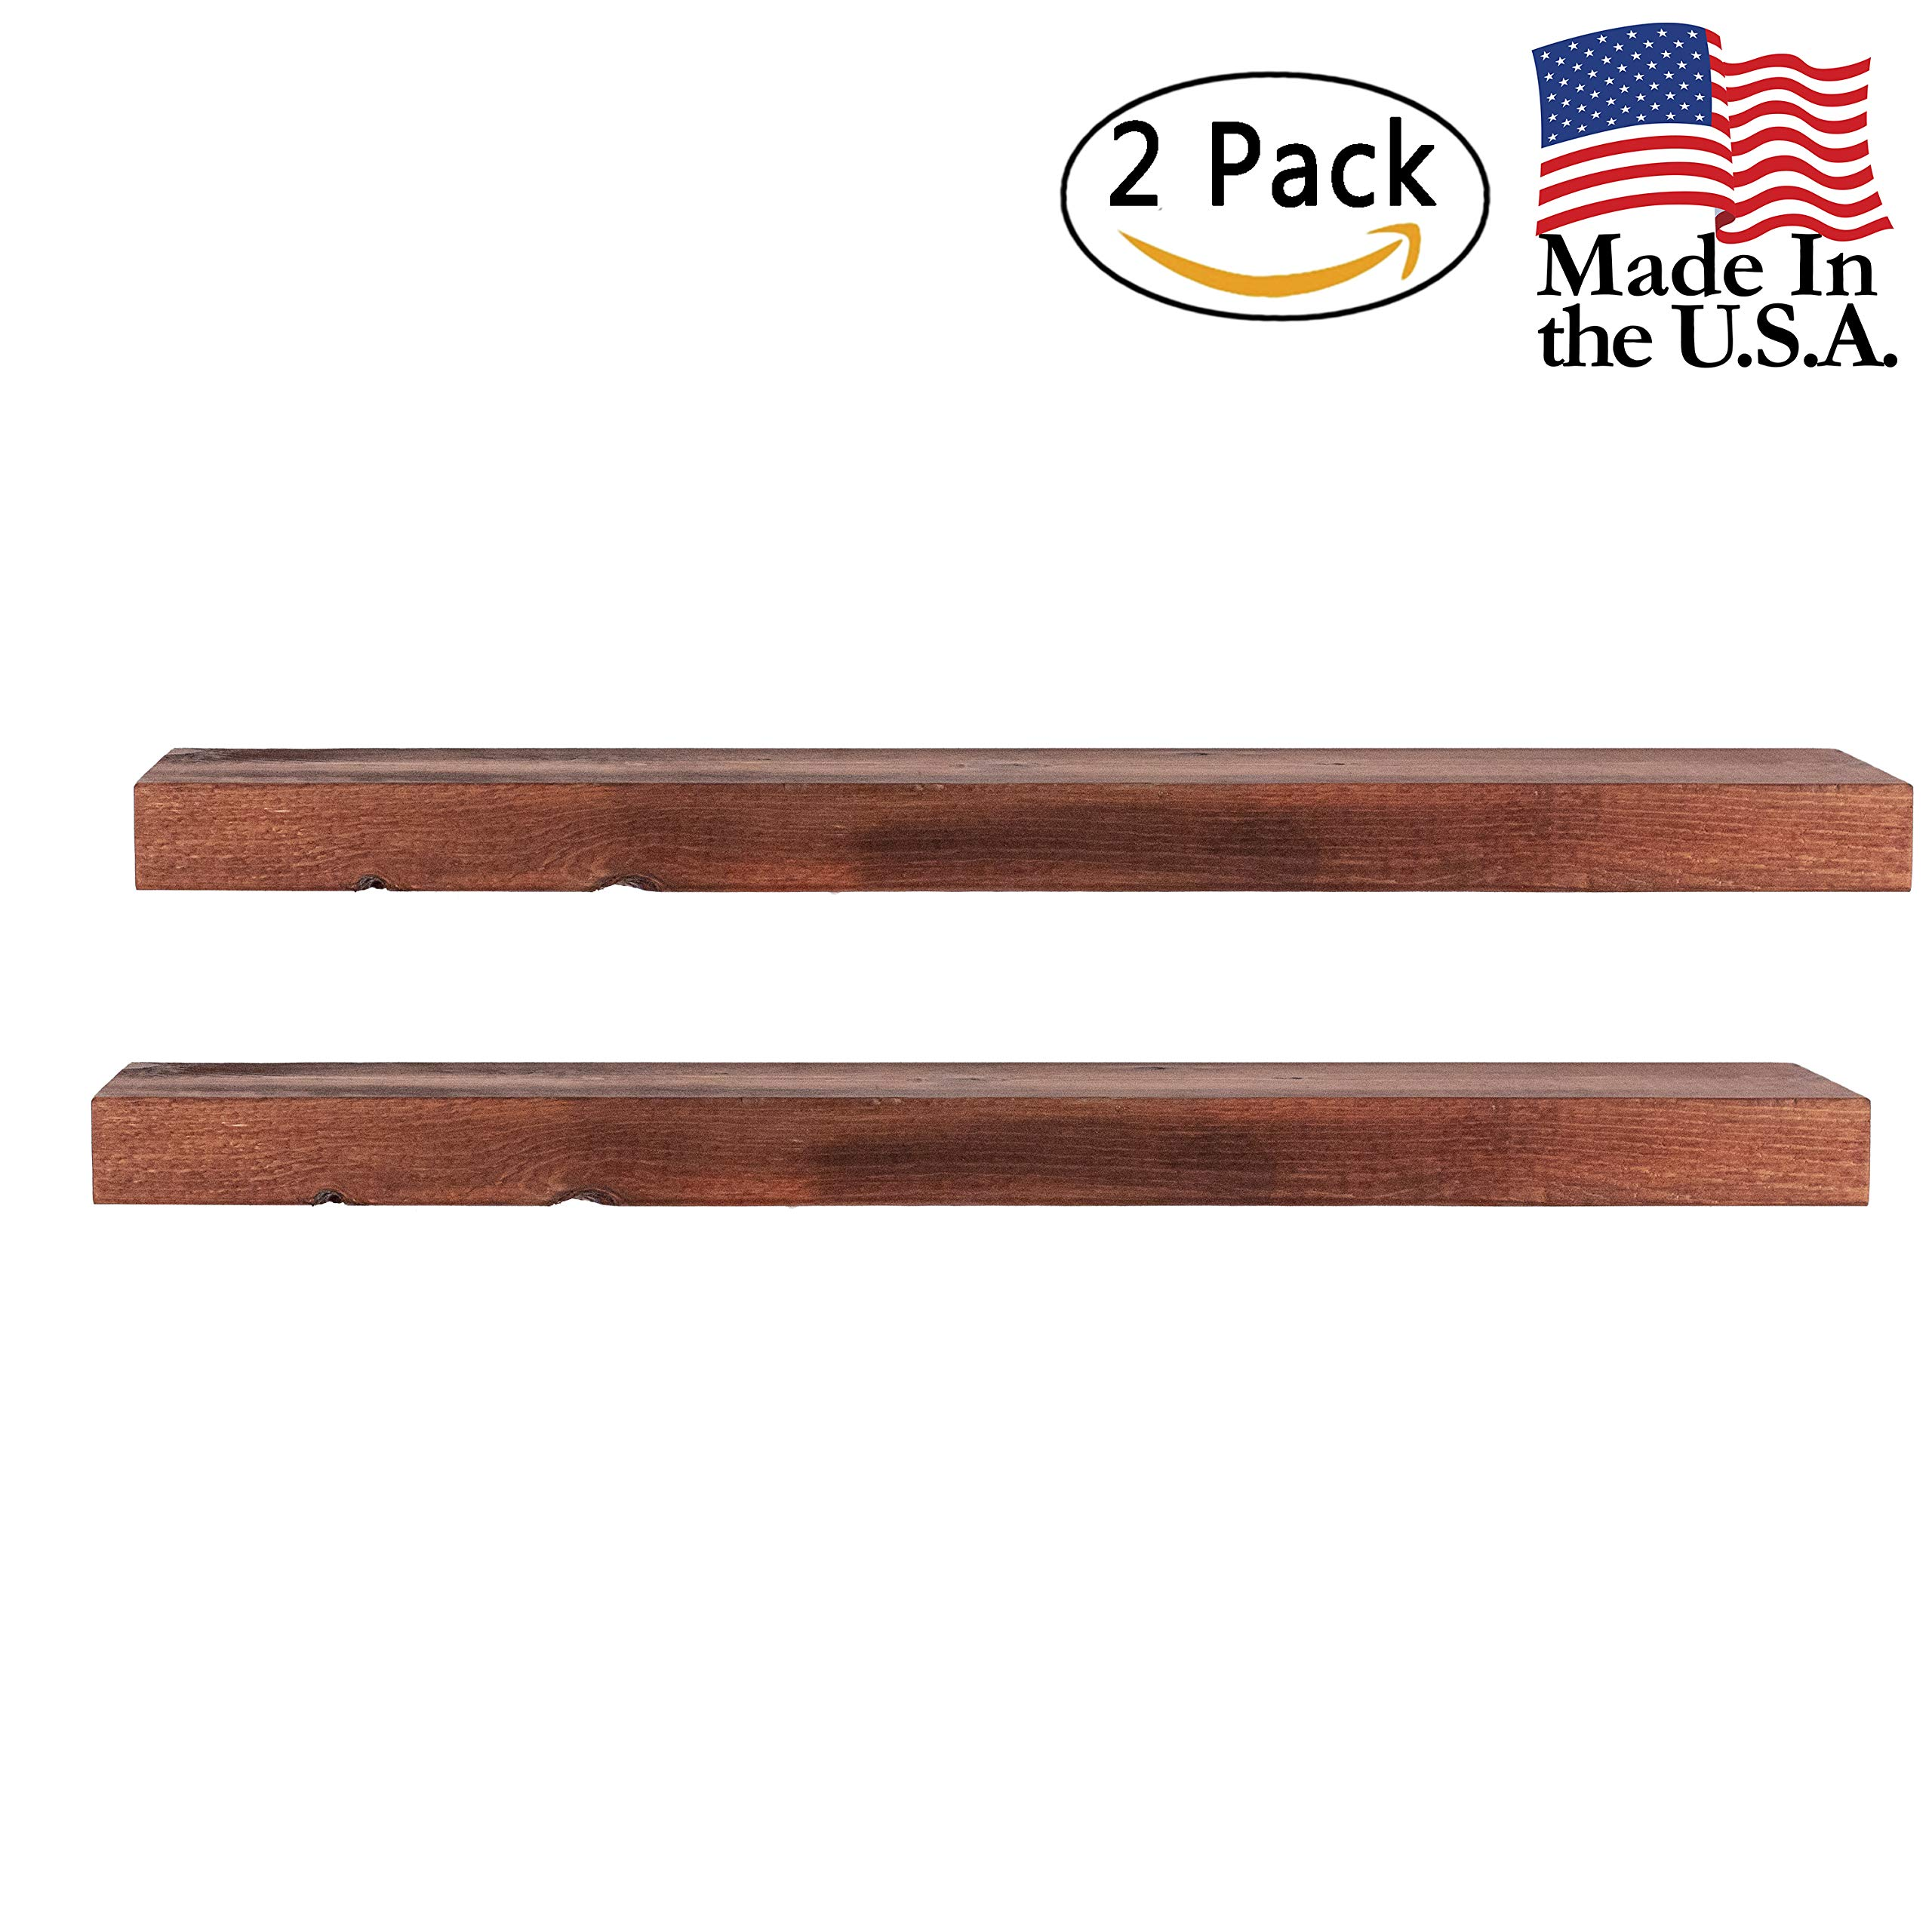 Floating Shelves Wall Mounted Shelf - Rustic Wood Decor Hanging for Bathroom Kitchen Bedrooms Living Room or Office Walls - Sturdy & Decorative Shelving Storage Rack - USA Made - 2 FT. Mahogany 2-Pack by US2U Displays (Image #1)